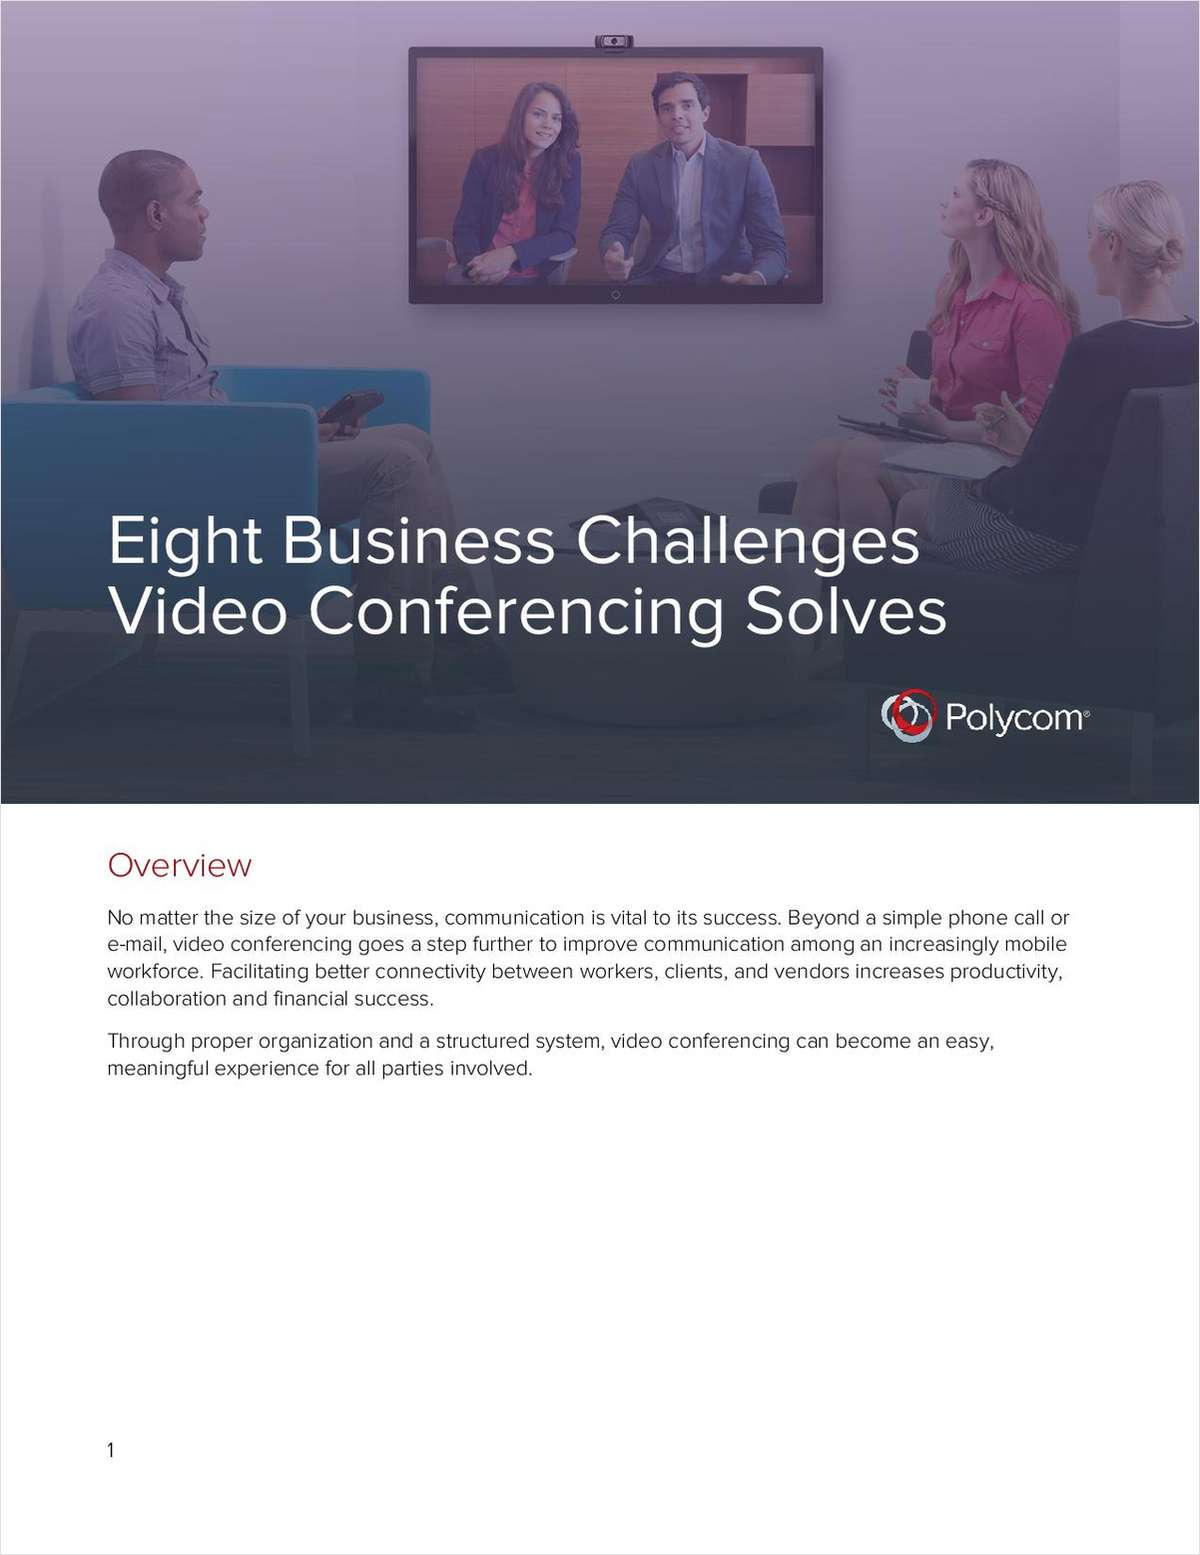 8 Business Challenges Video Conferencing Solves